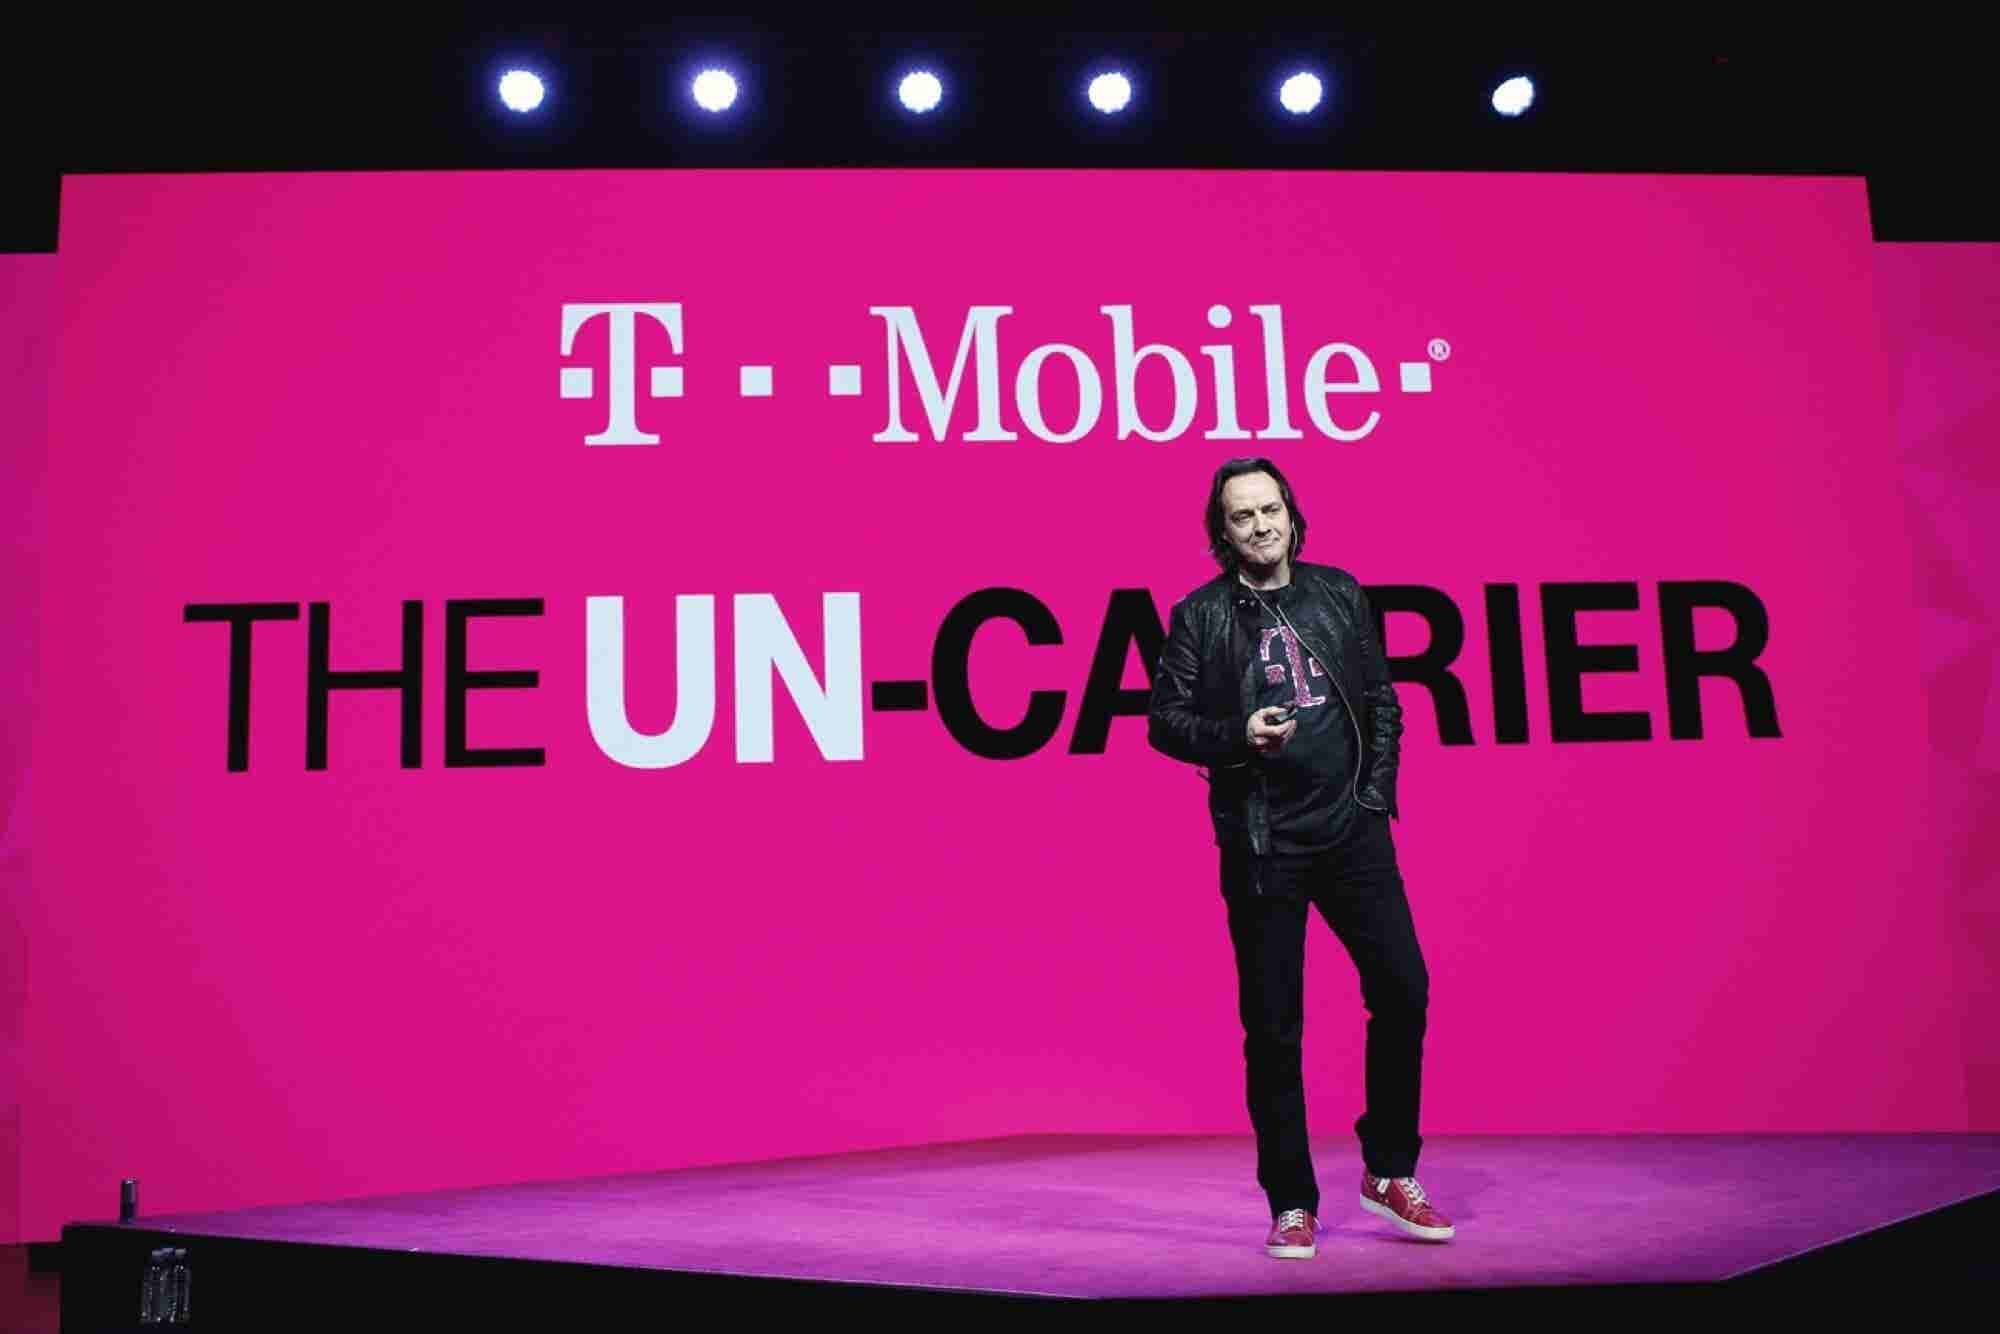 T-Mobile's Latest Attack on Verizon Is a Masterful Marketing Maneuver